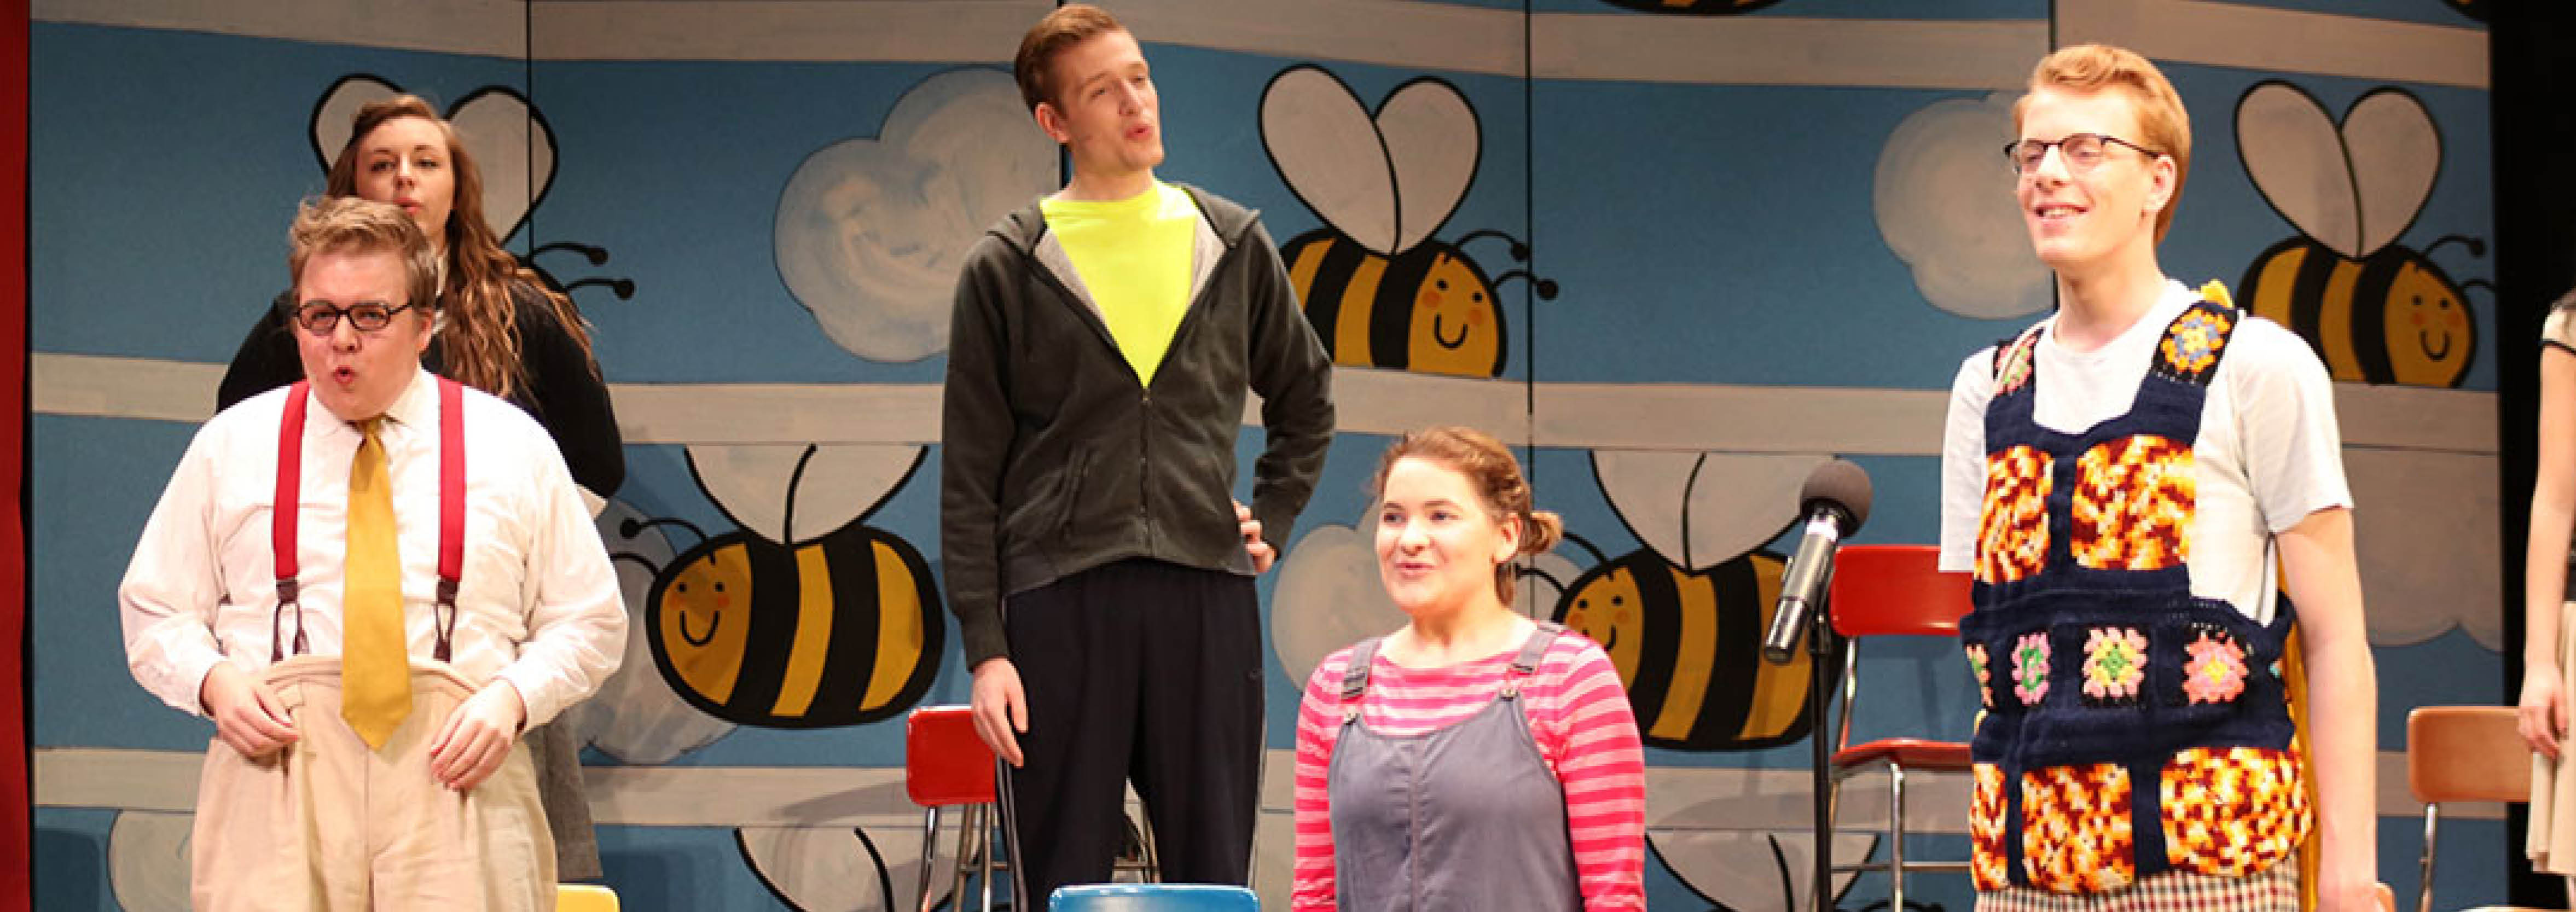 25th Annual Putnam County Spelling Bee, February 2017